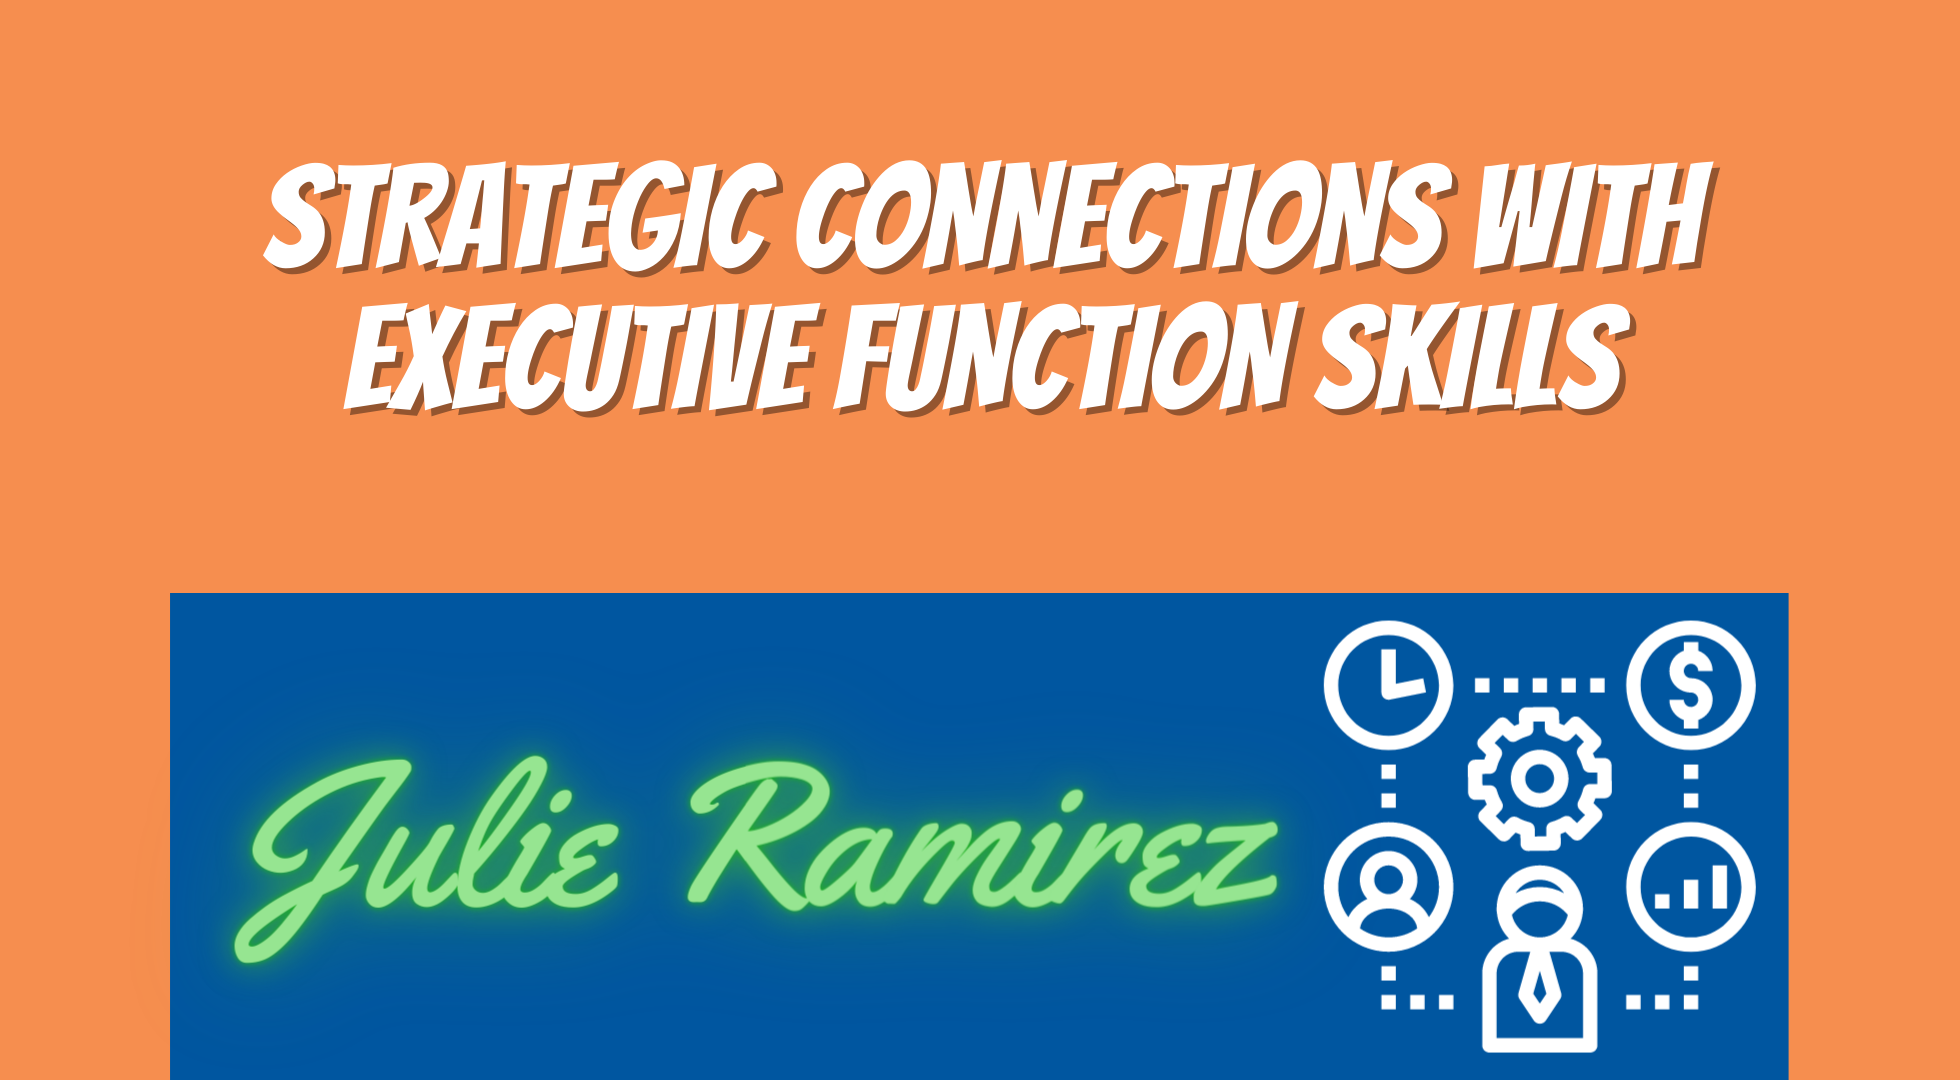 Strategic Connections With Executive Function Skills